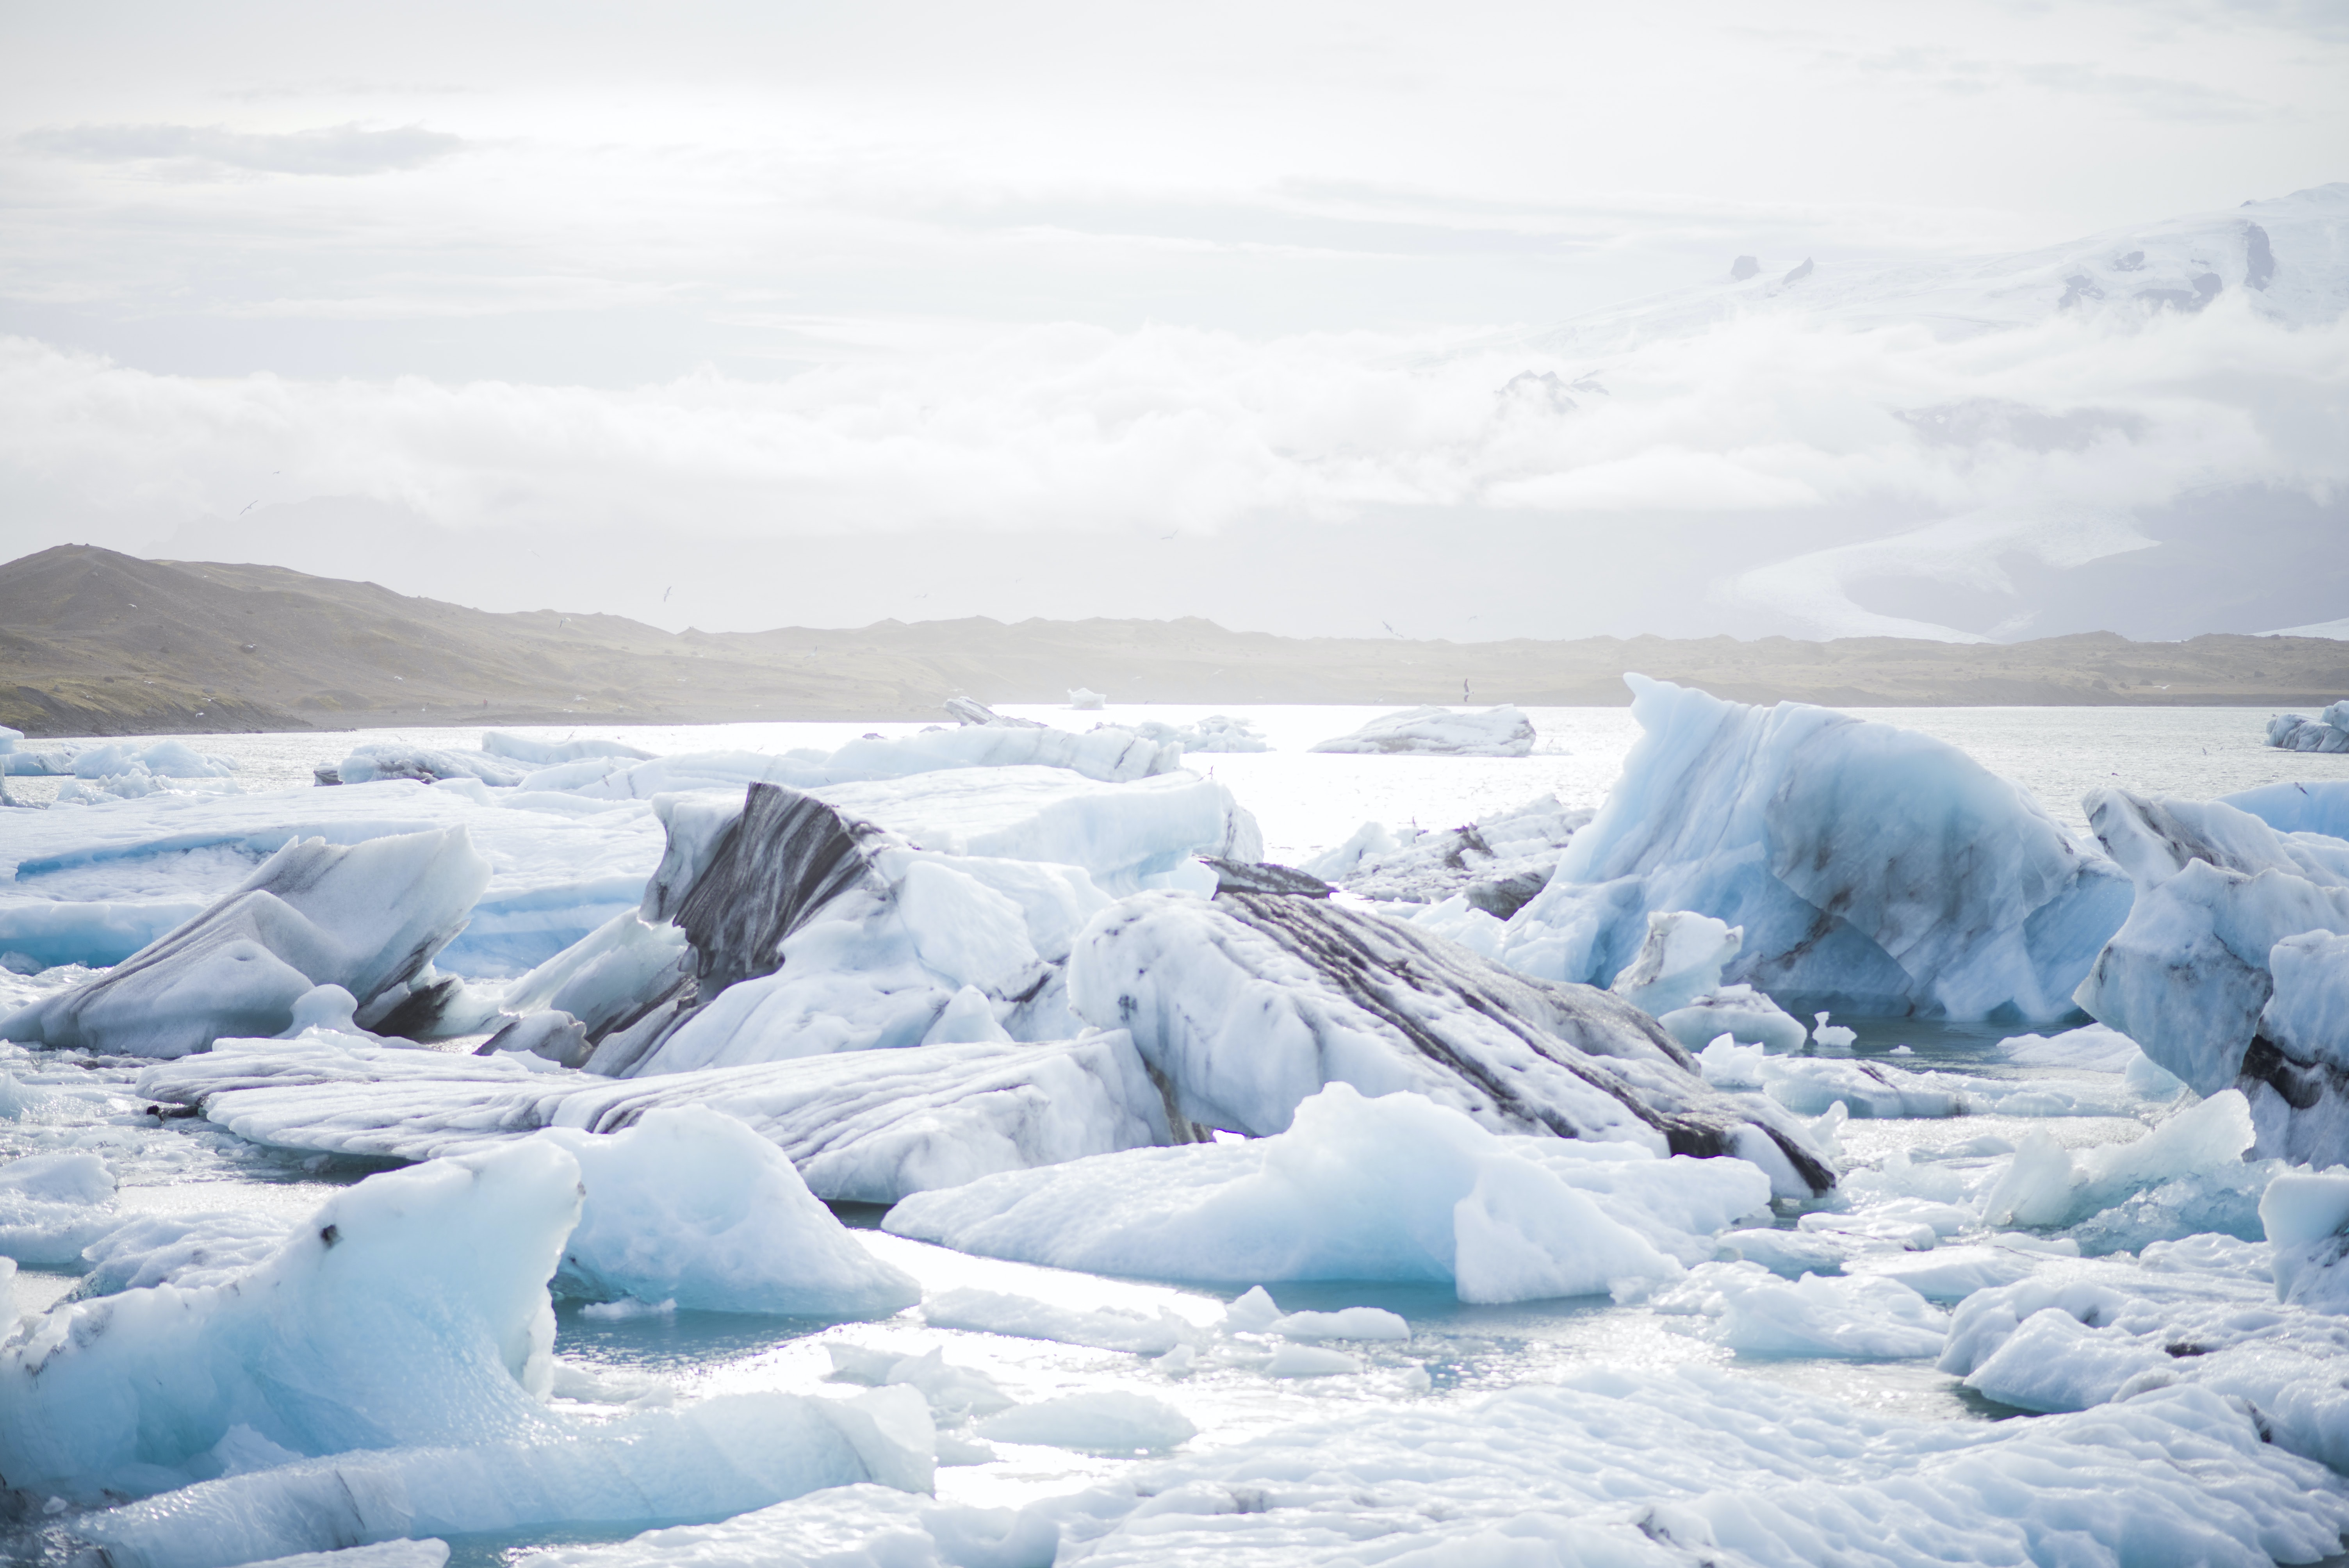 Large blocks of ice on a glacier in the mountain